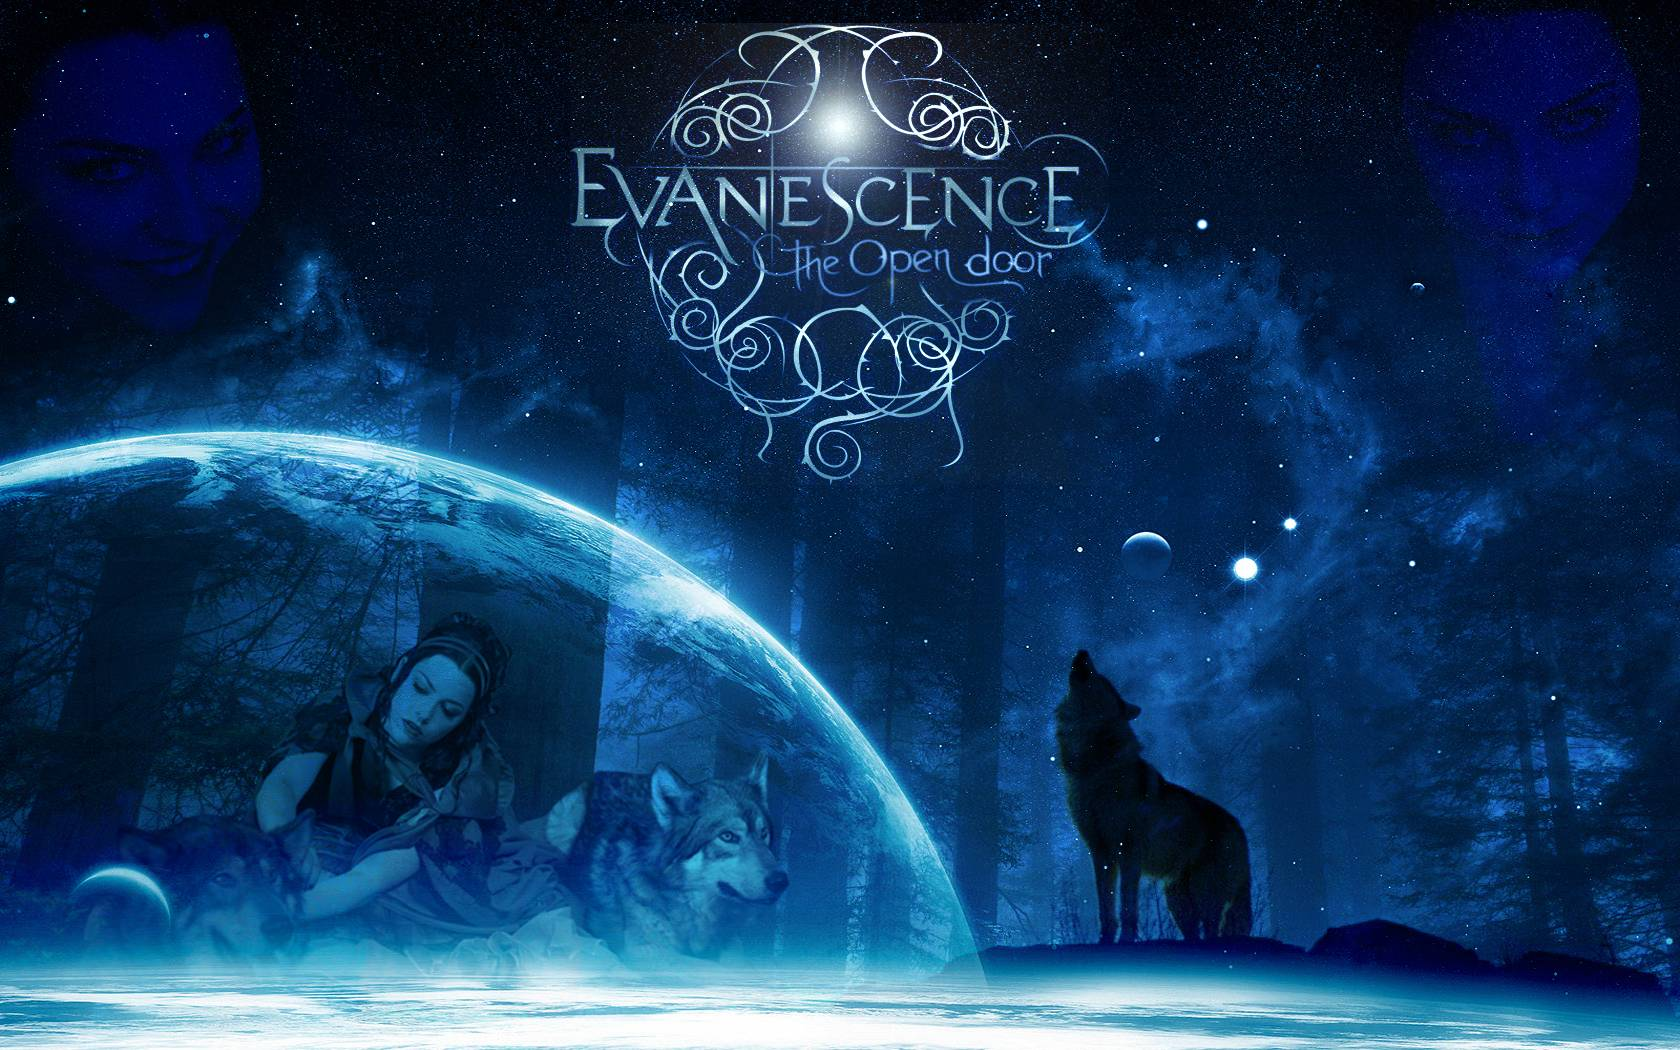 Evanescence Logo Wallpapers 1680x1050